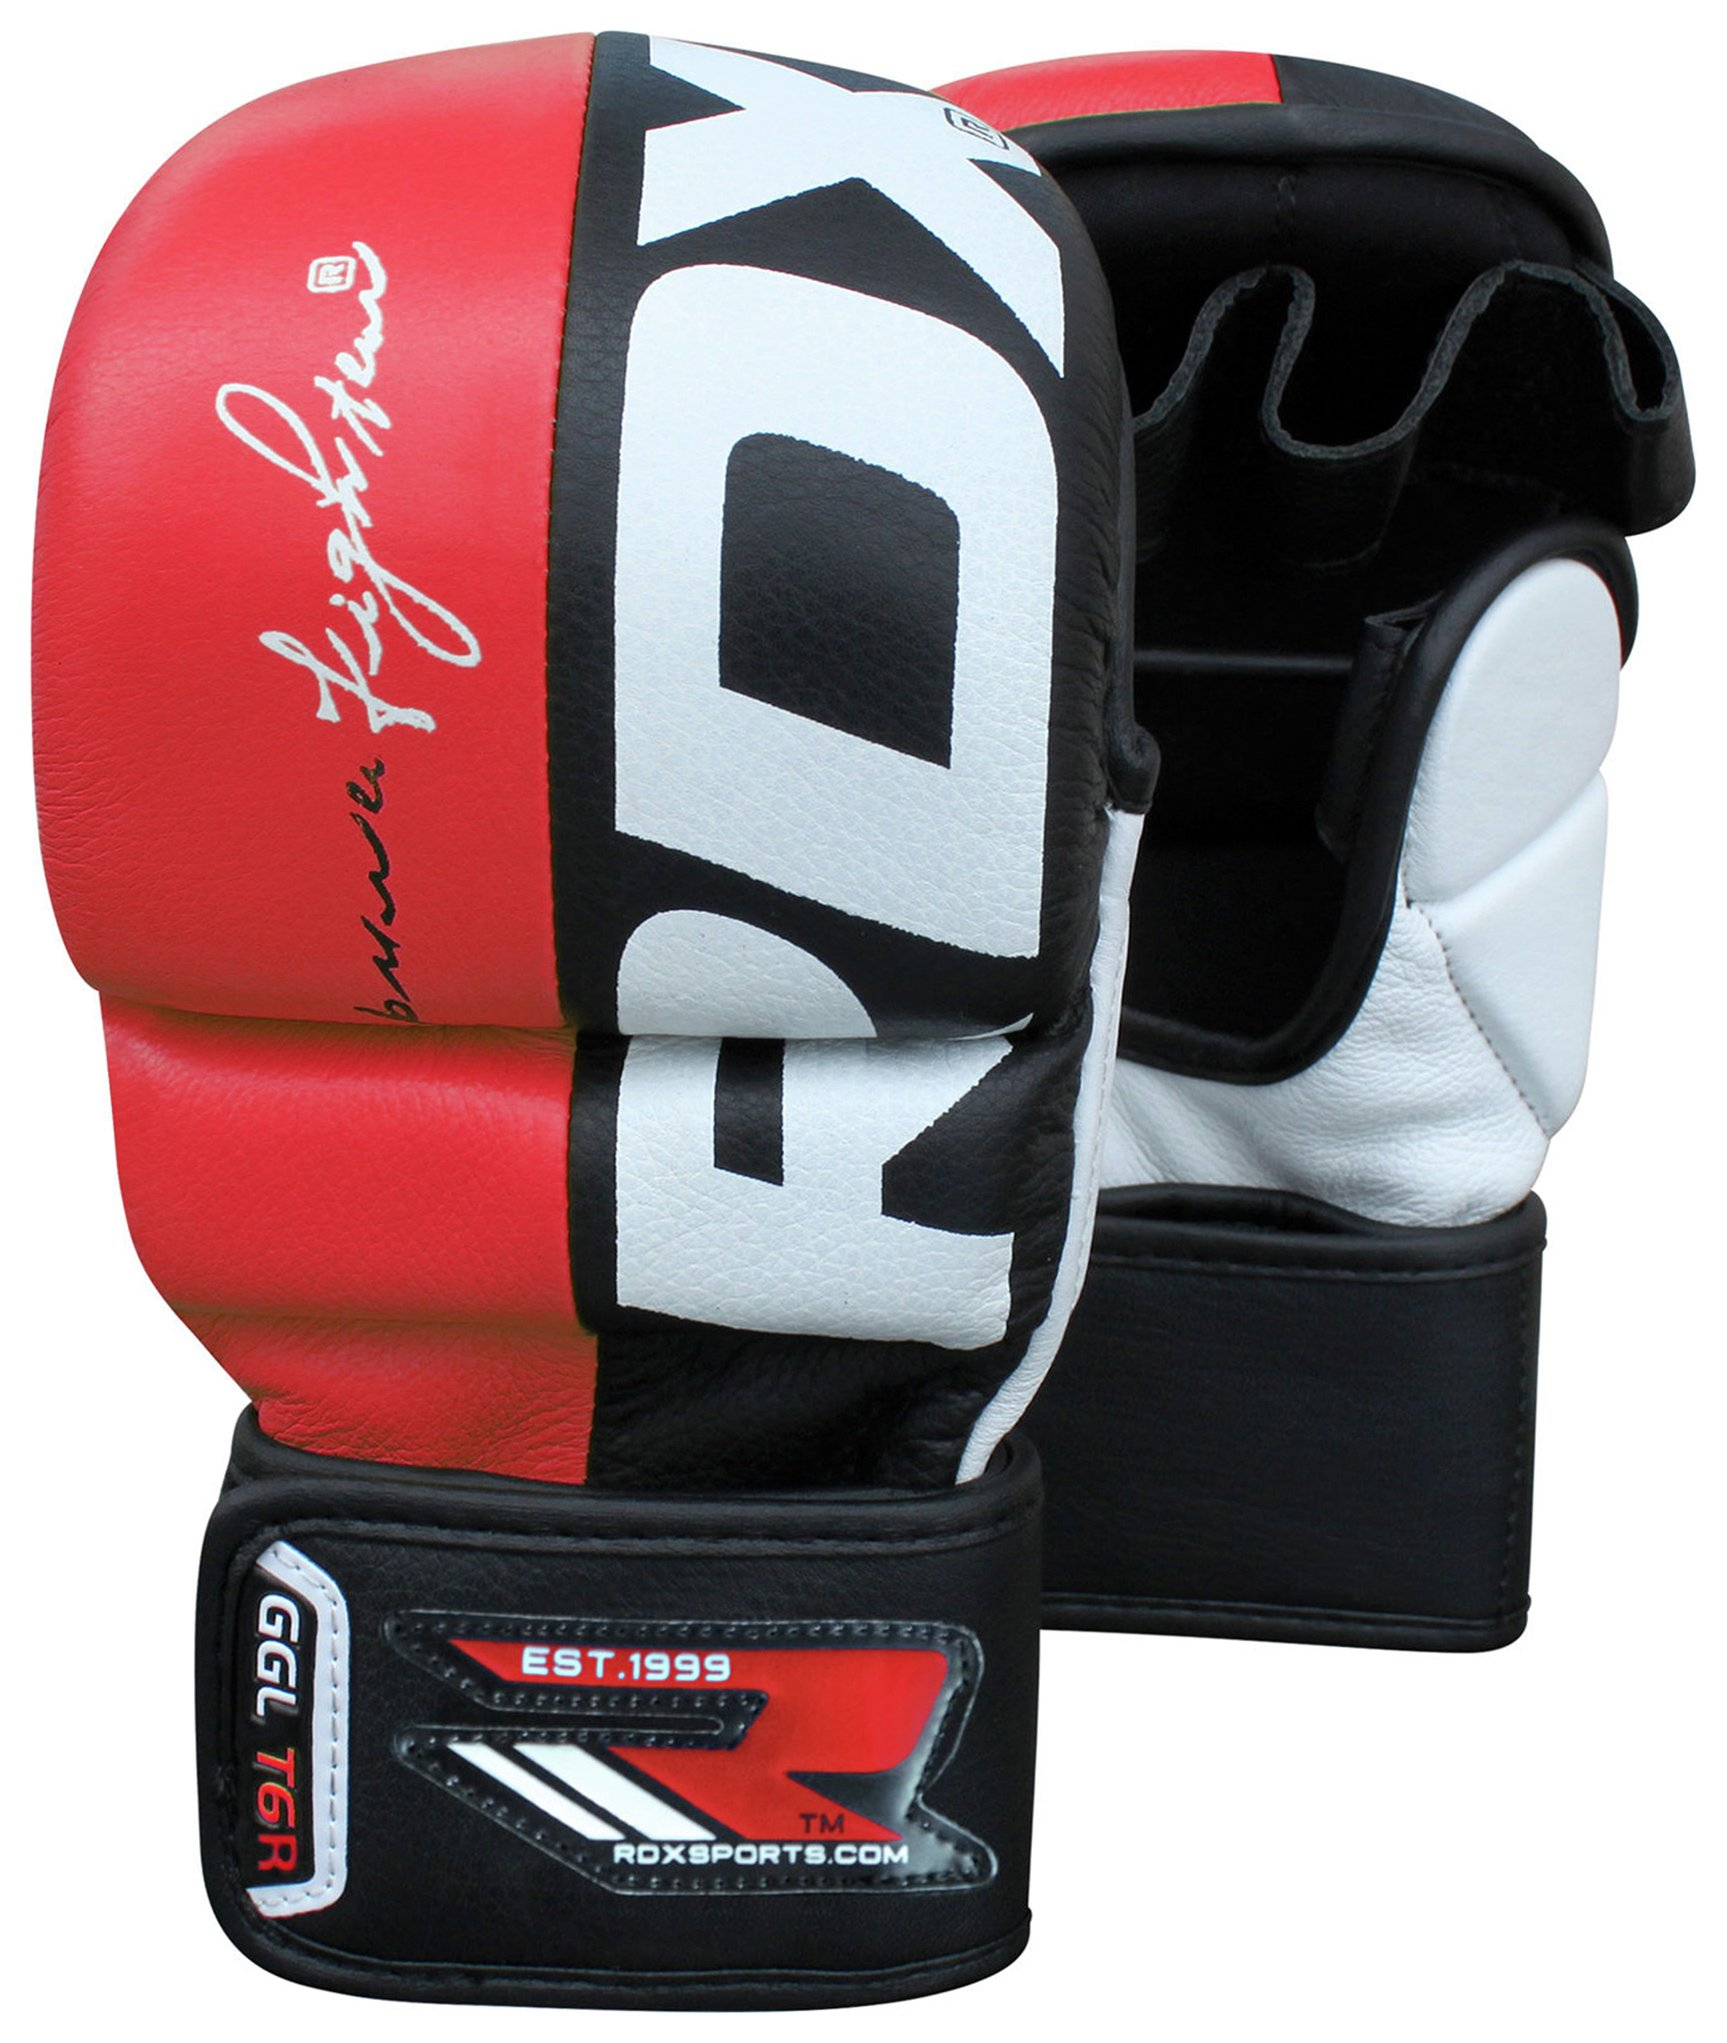 RDX Large to XLarge Mixed Martial Arts Training Gloves - Red